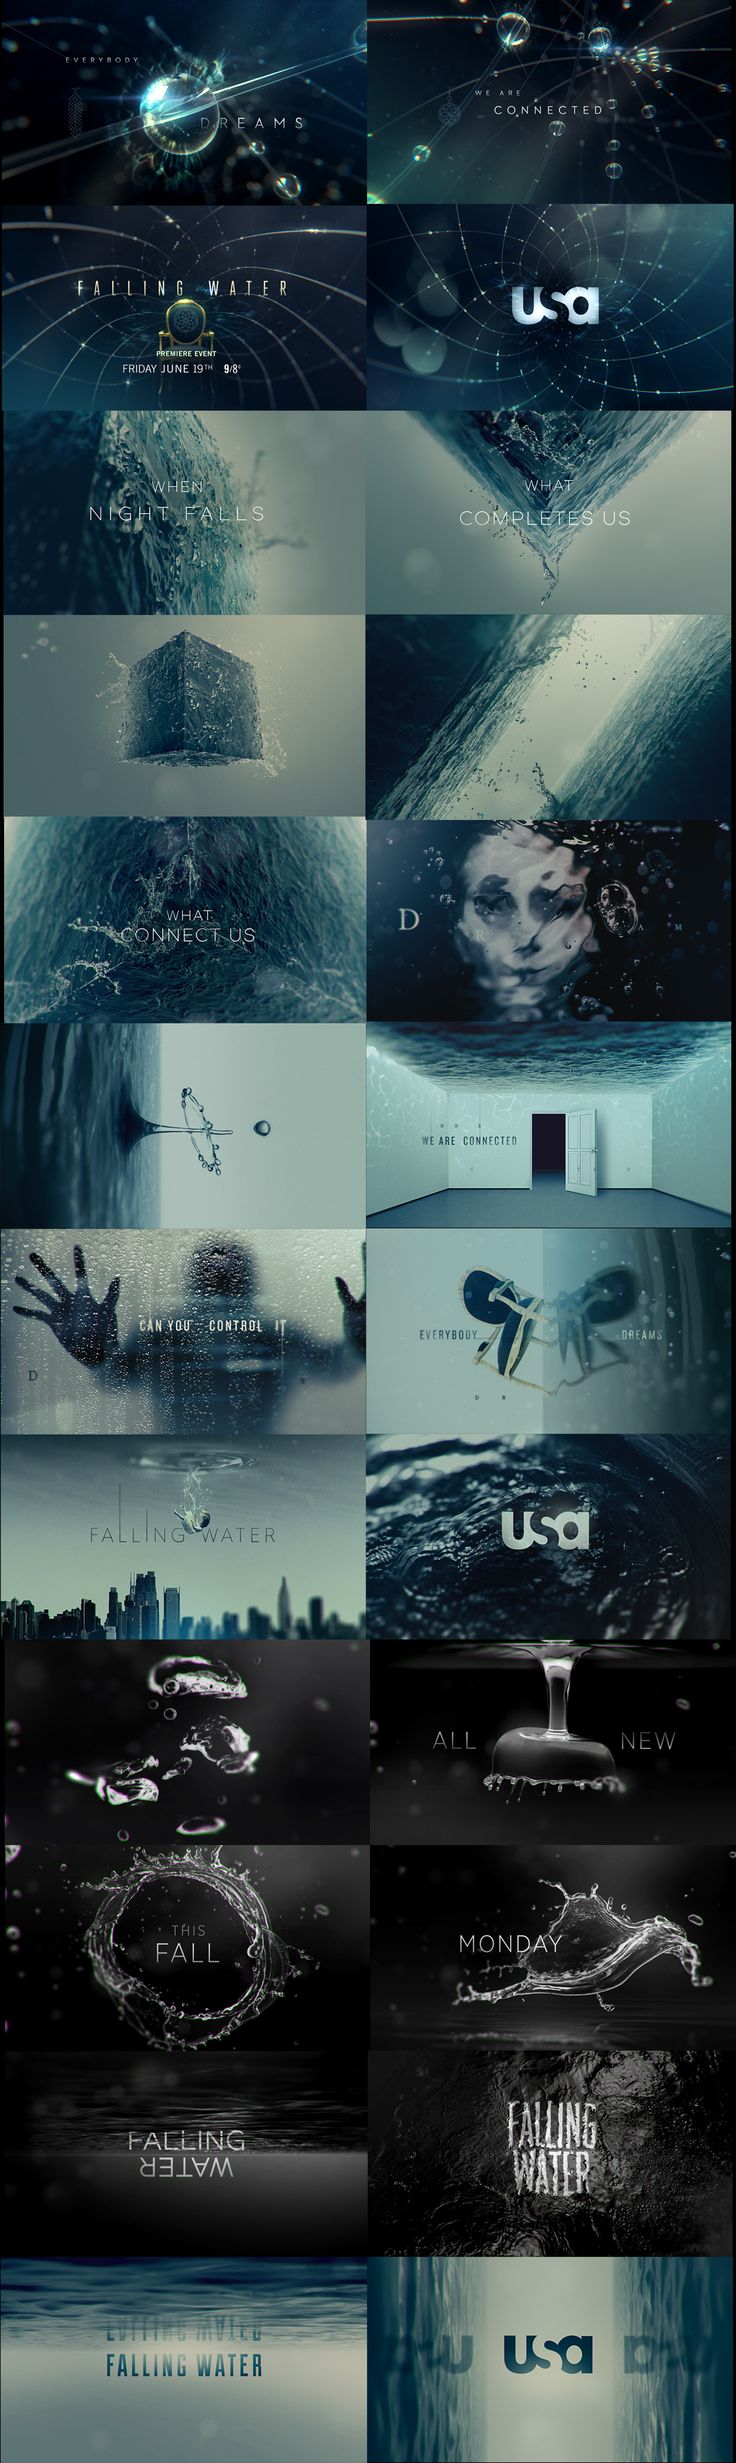 "PROMO CONCEPTS for the USA tv show ""Falling water""done through KING & COUNTRY"